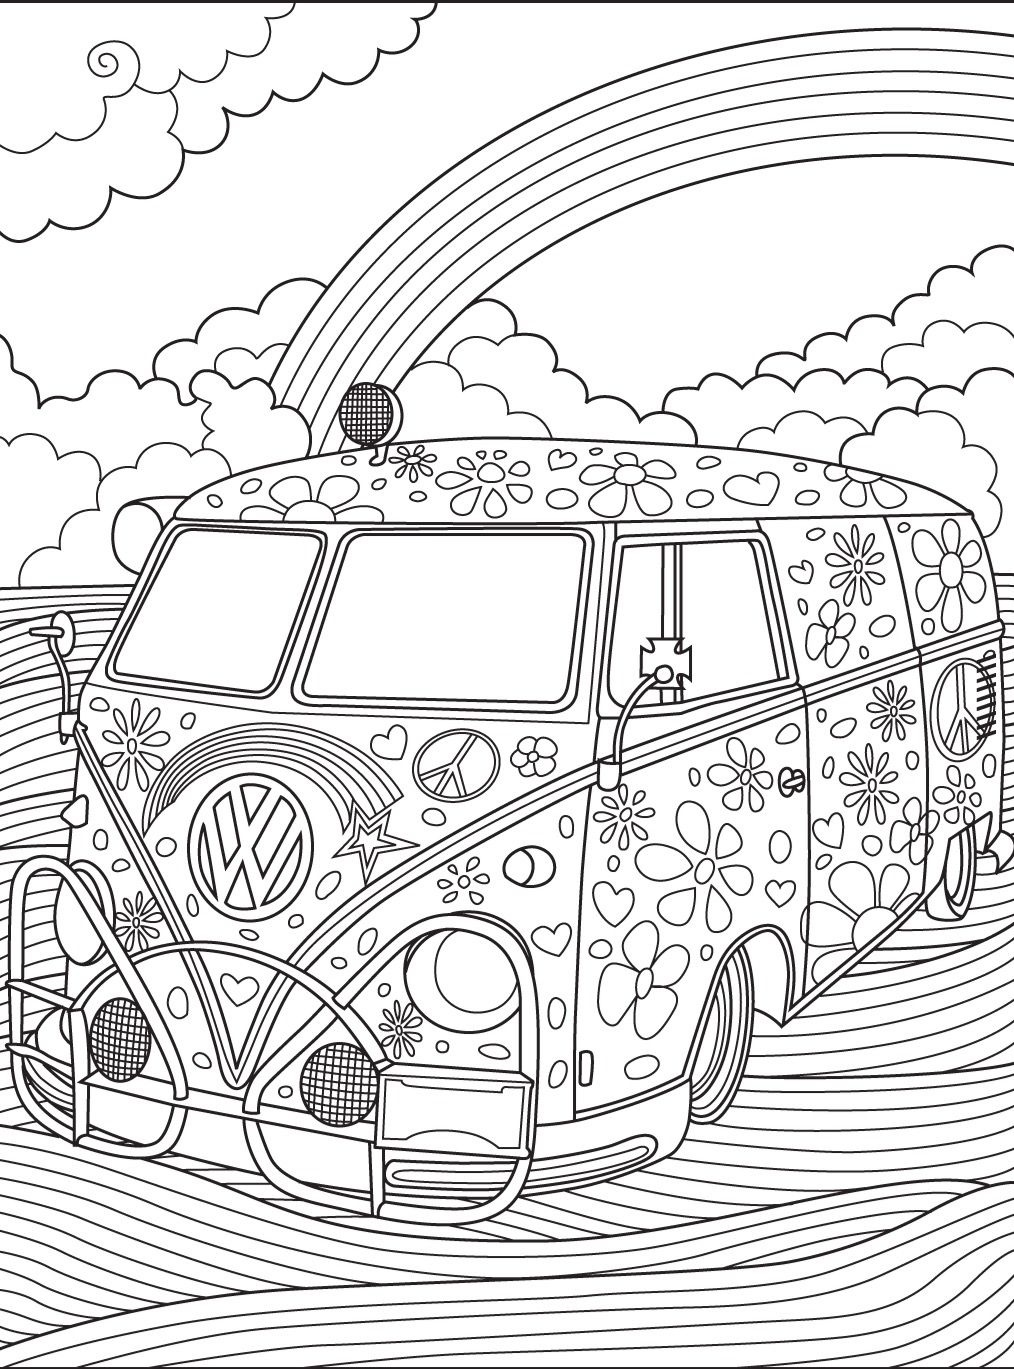 1014x1369 Adult Coloring Pages Of Cars Collection Coloring Sheets